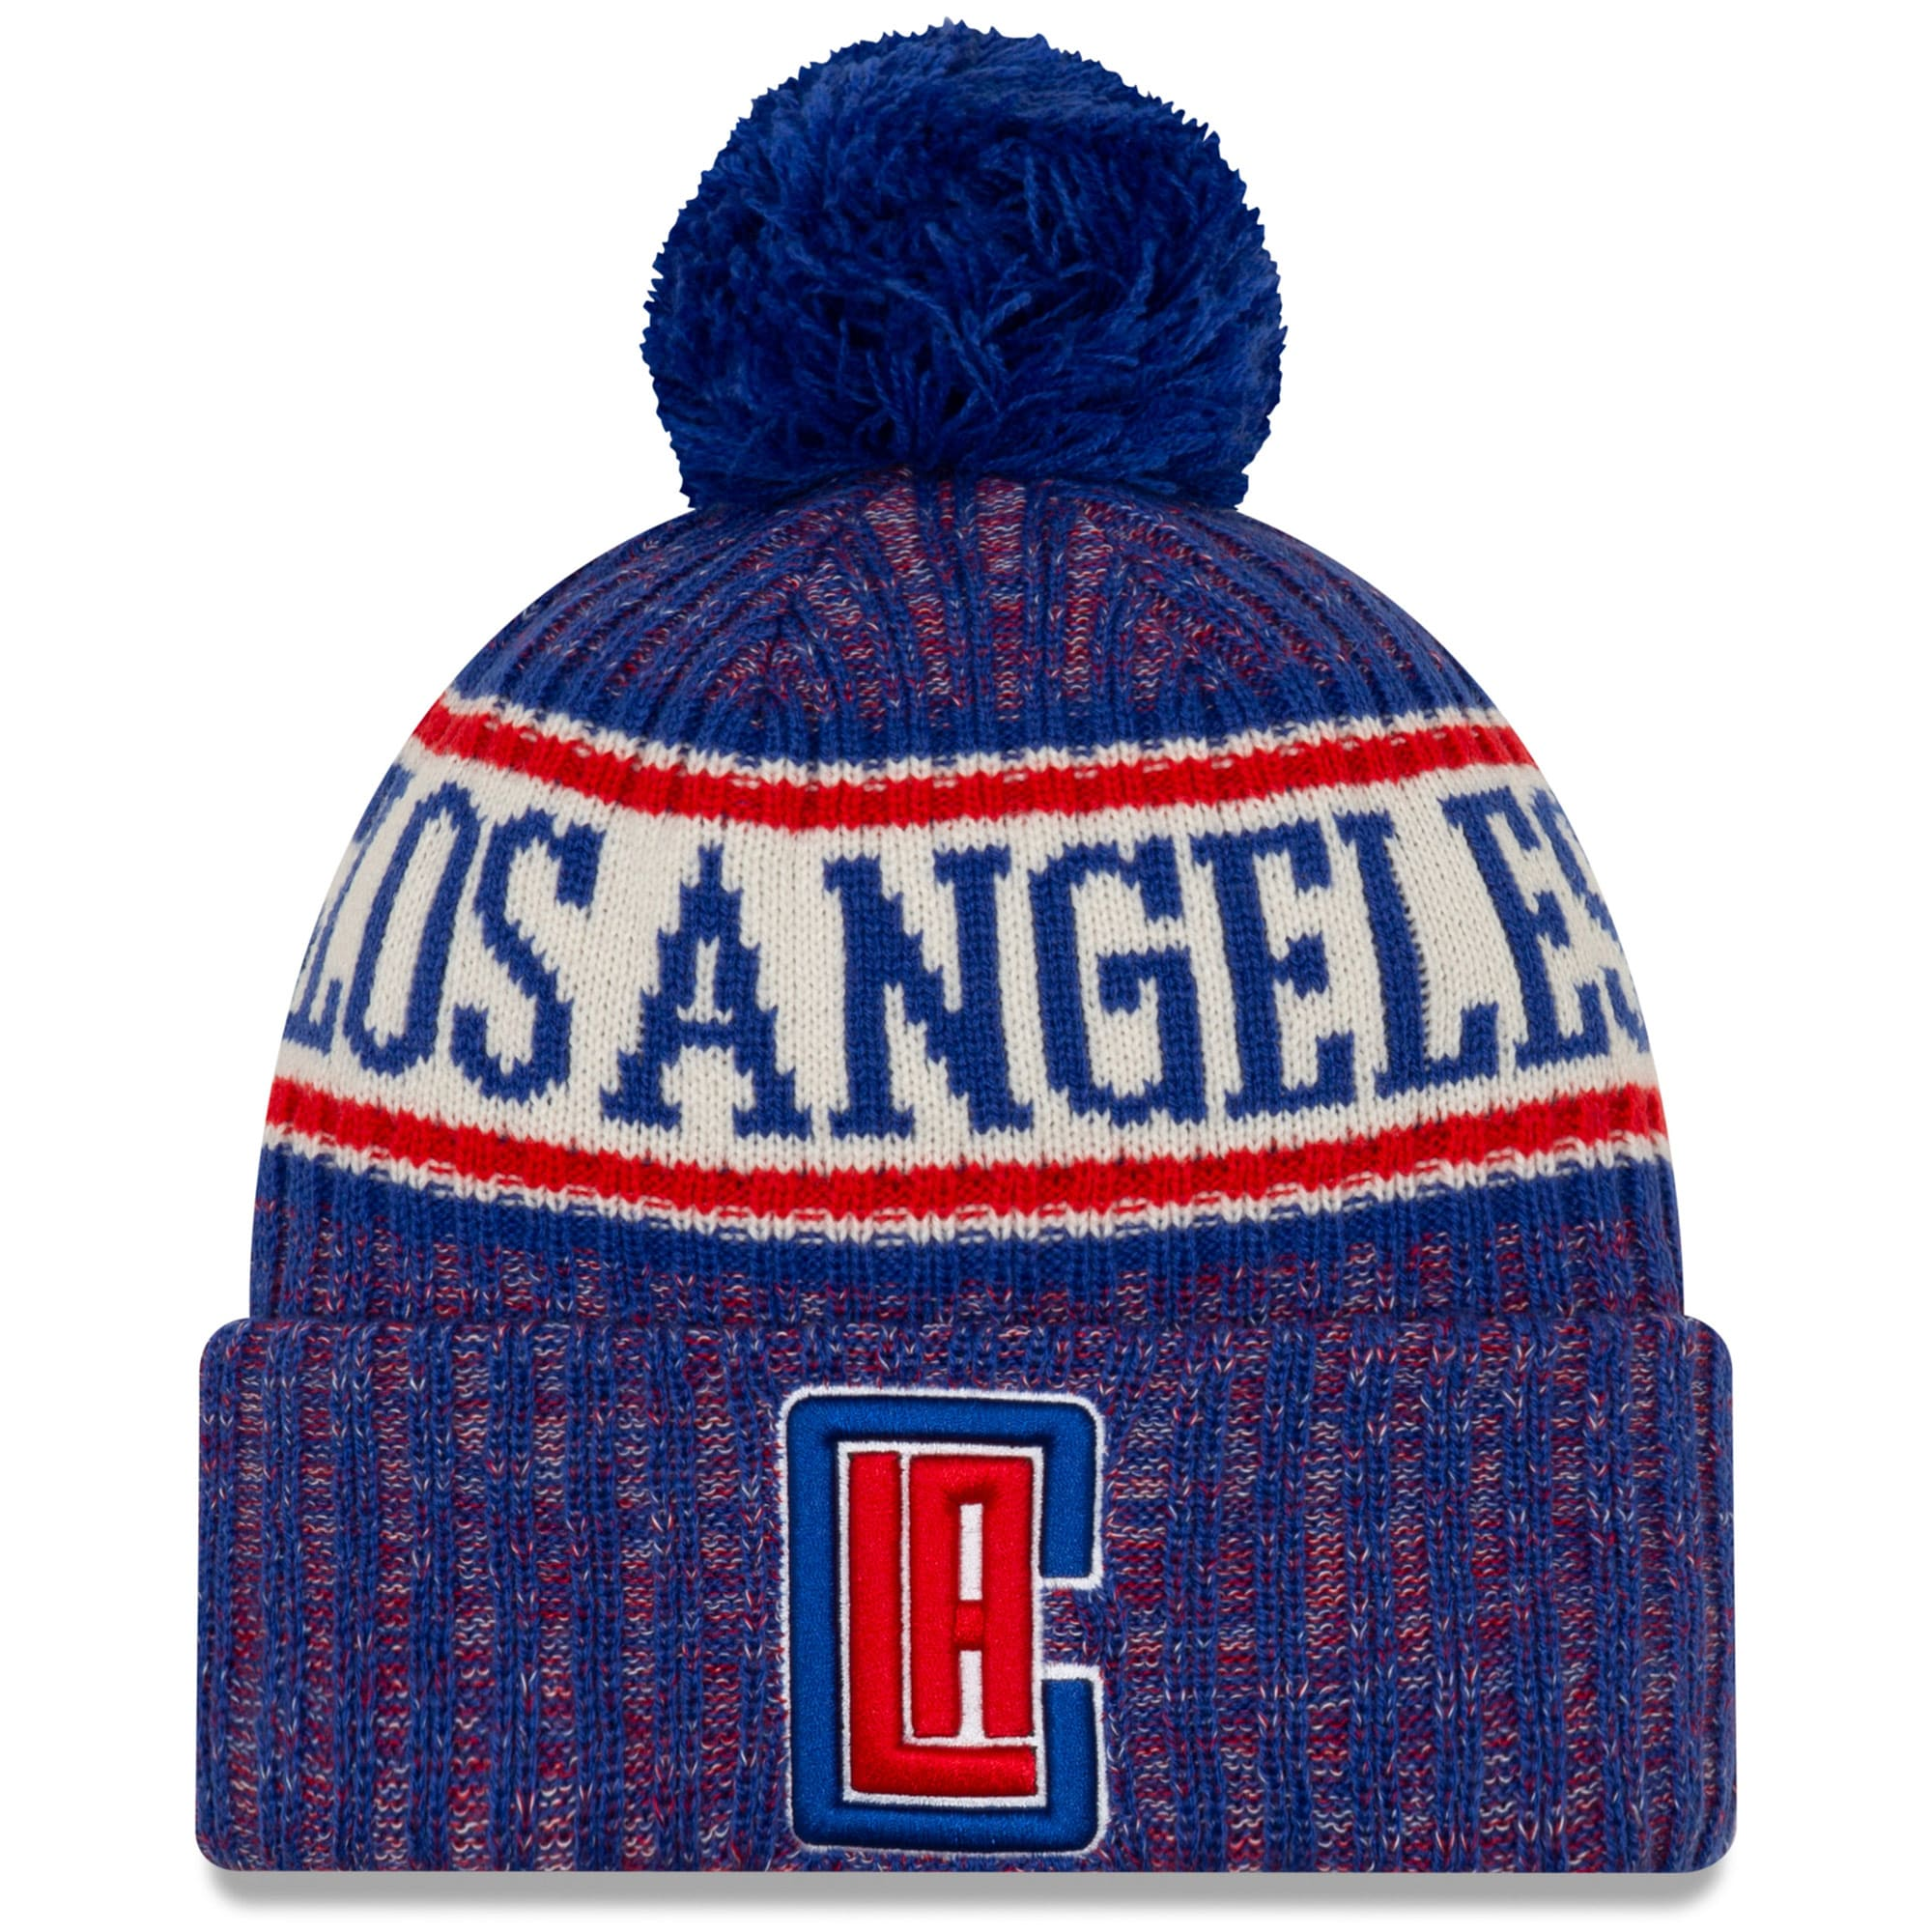 LA Clippers New Era Sport Cuffed Knit Hat with Pom - Royal